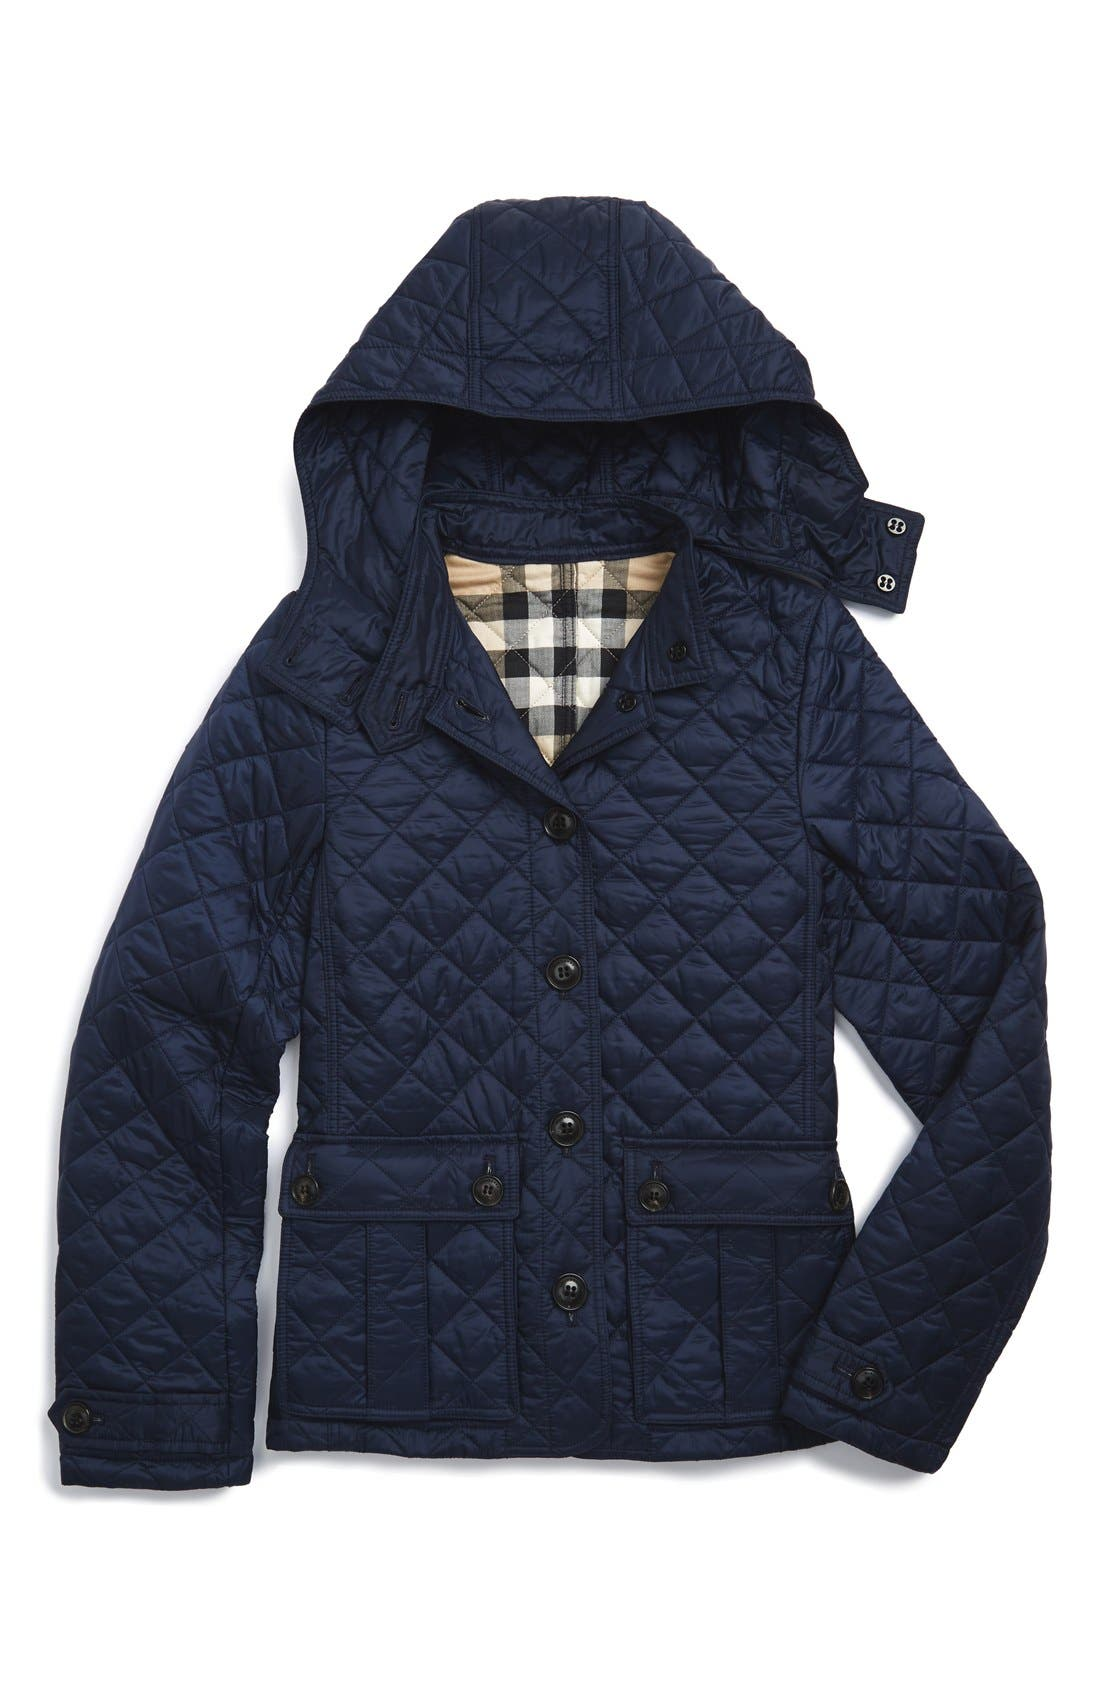 BURBERRY 'Tiggsmoore' Diamond Quilted Jacket, Main, color, 409